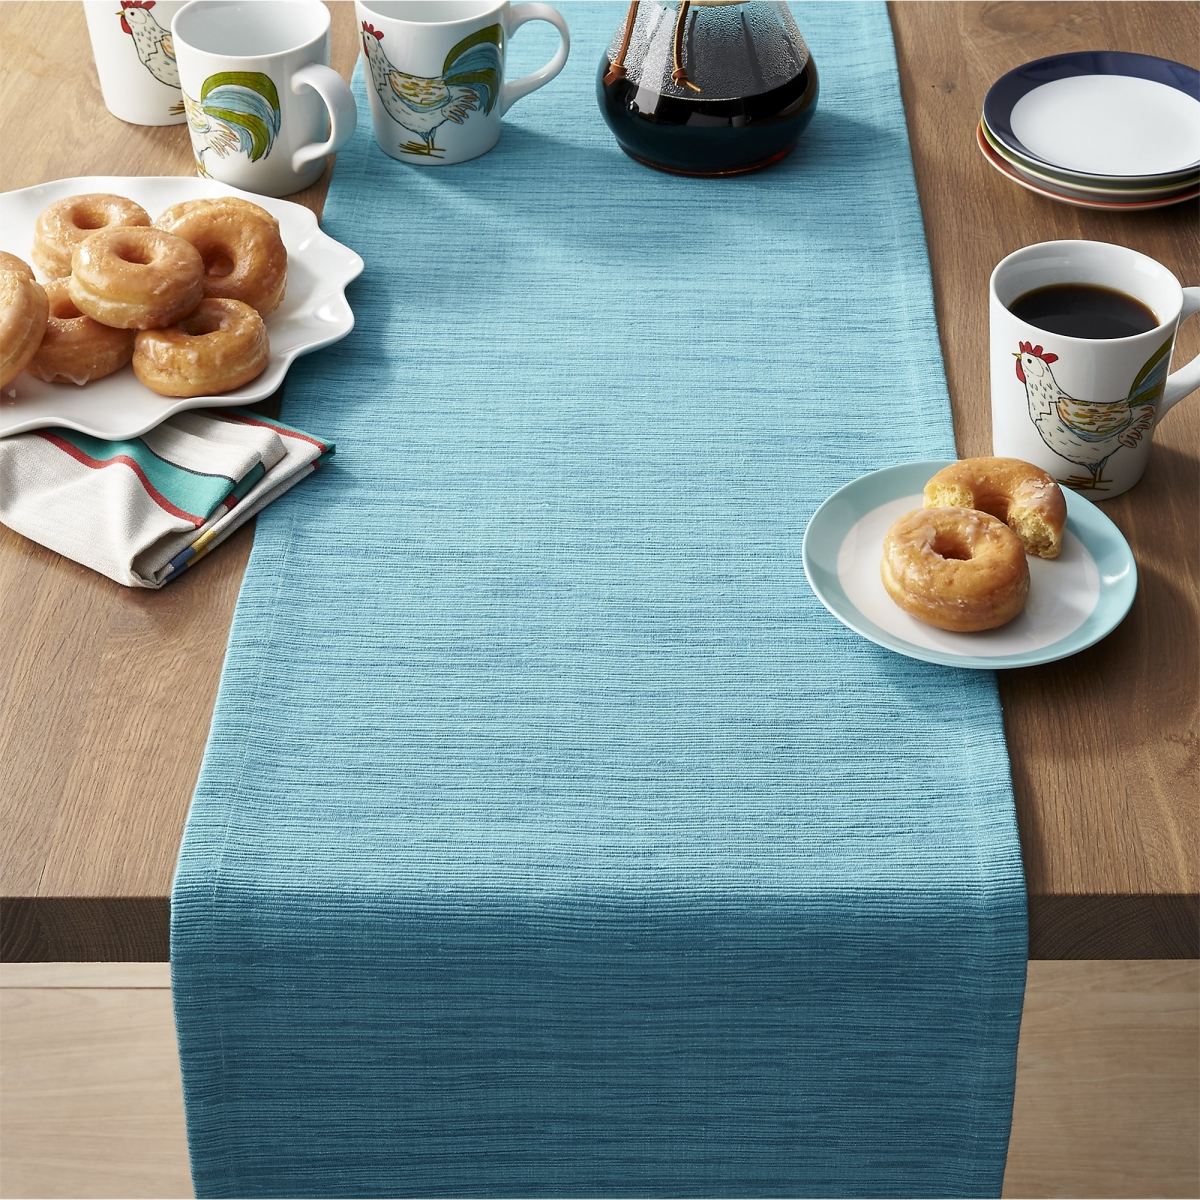 Best Kitchen Gallery: The Hunt For The Perfect Table Runner of Table Runners  on rachelxblog.com